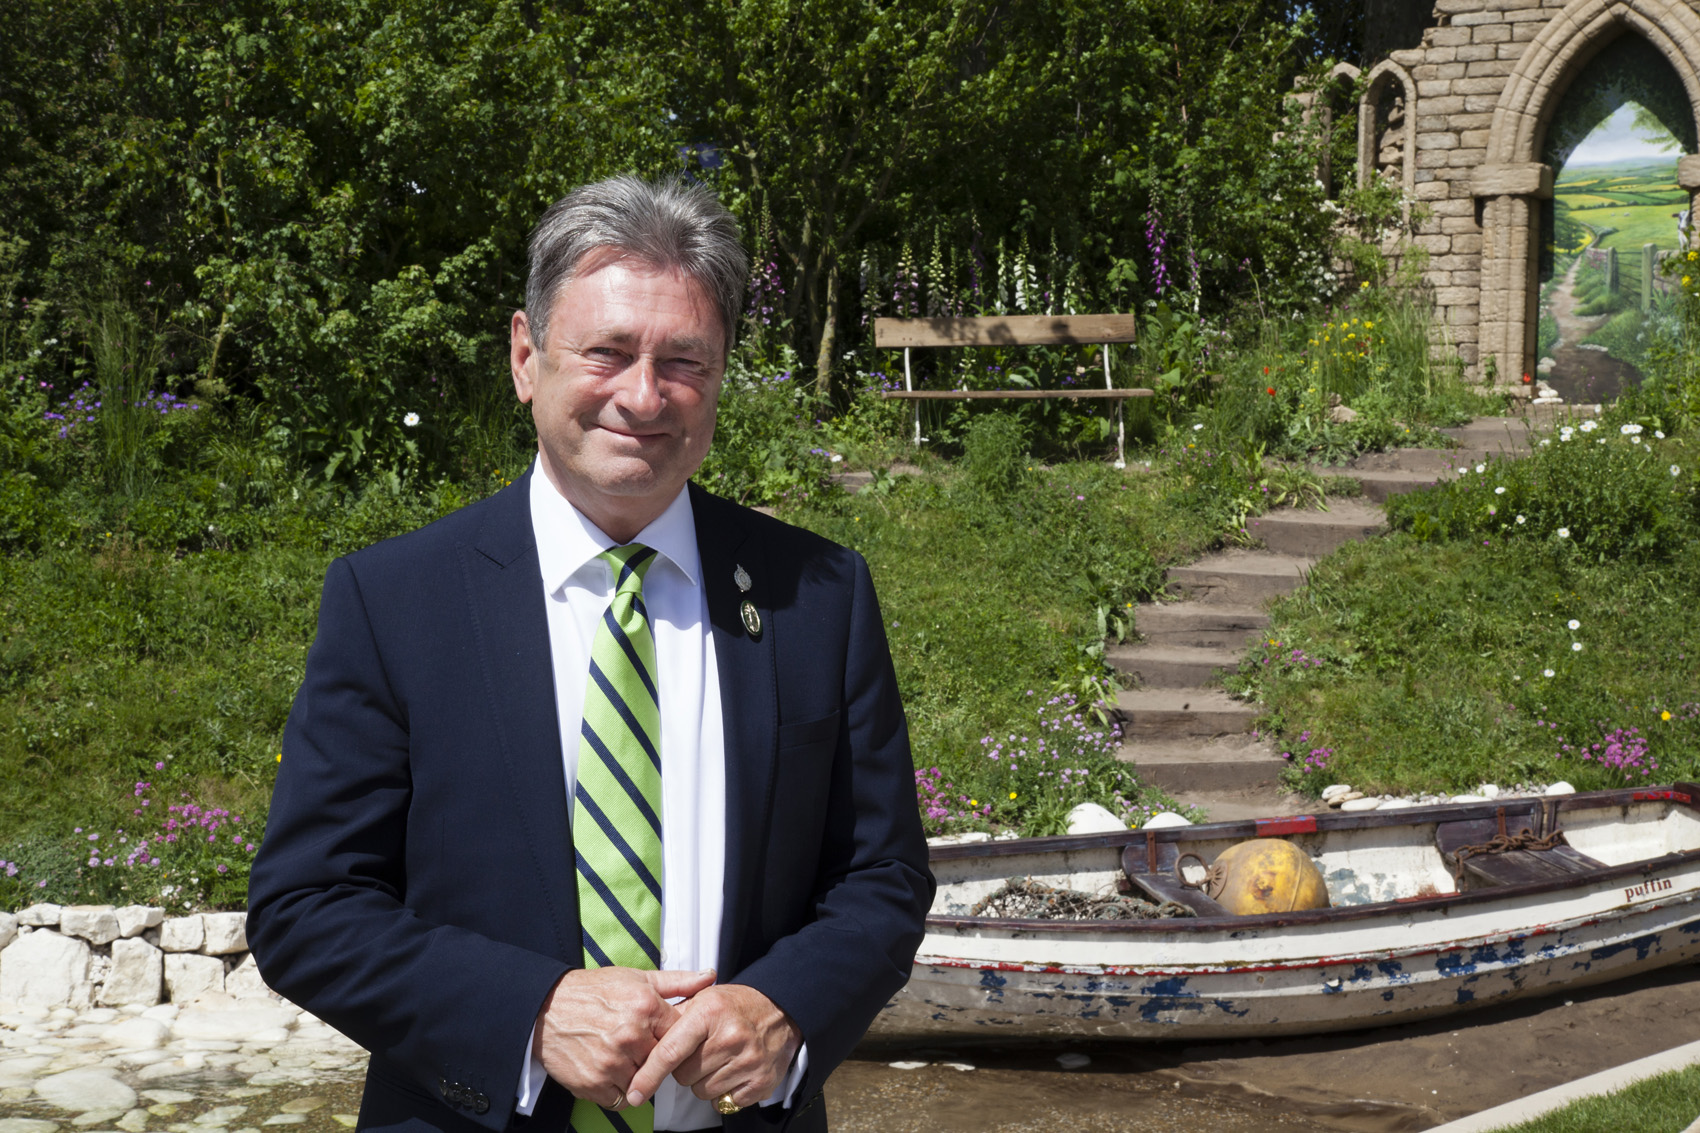 Gardening-legend-Alan-Titchmarsh